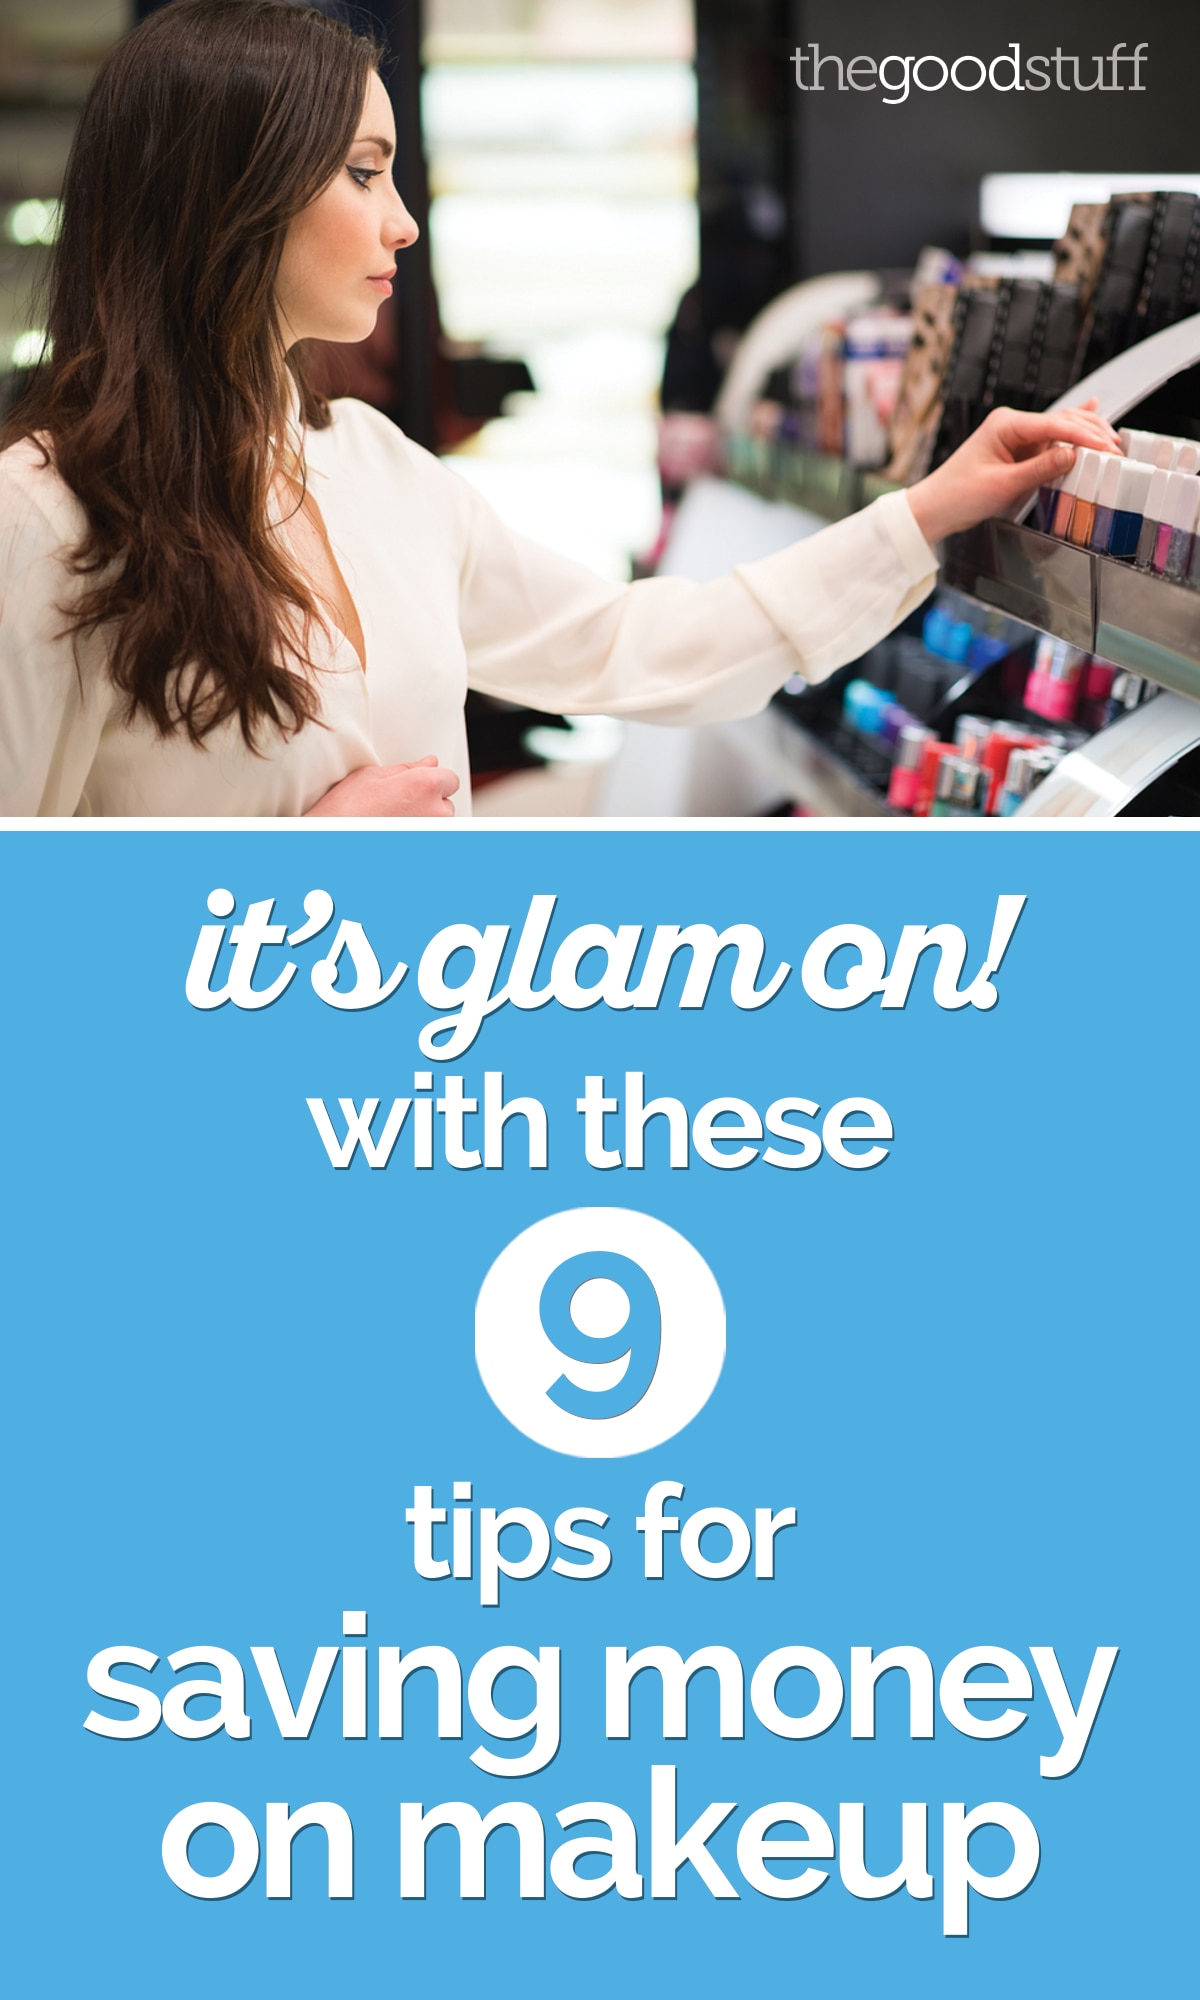 It's Glam On! With These 9 Tips for Saving Money on Makeup | thegoodstuff